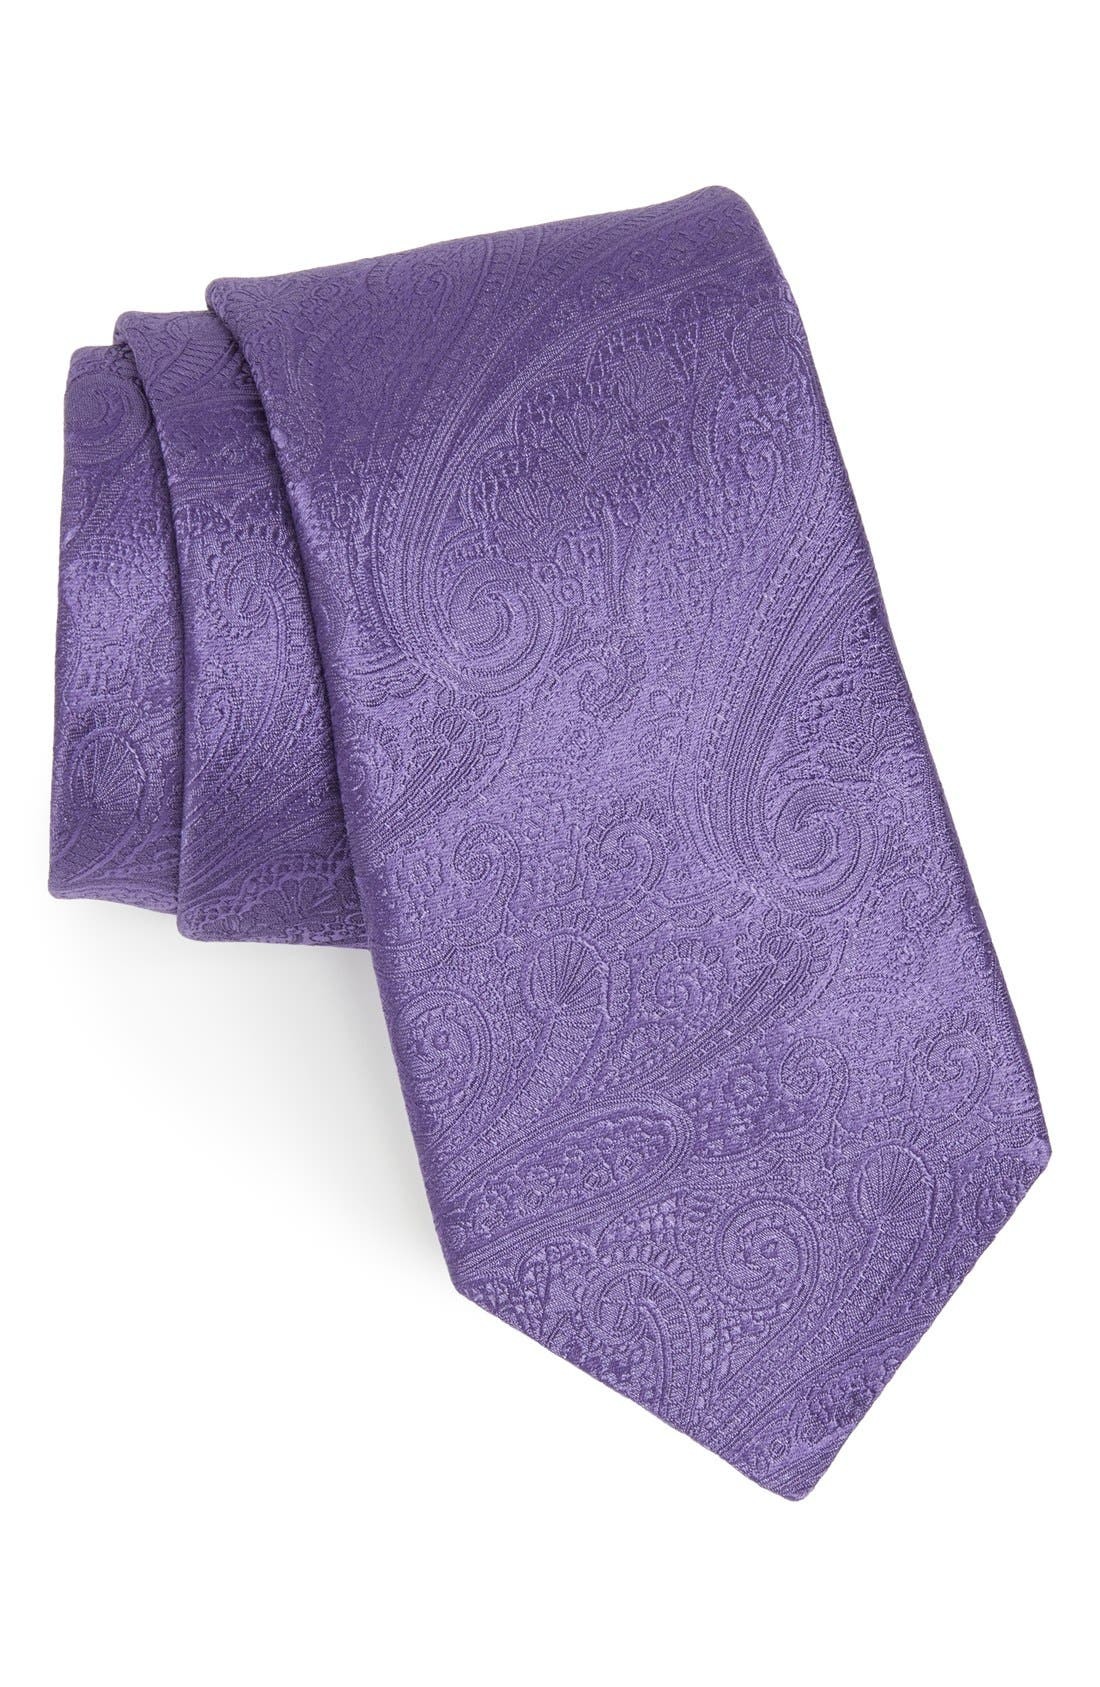 Alternate Image 1 Selected - Michael Kors Paisley Woven Silk Tie